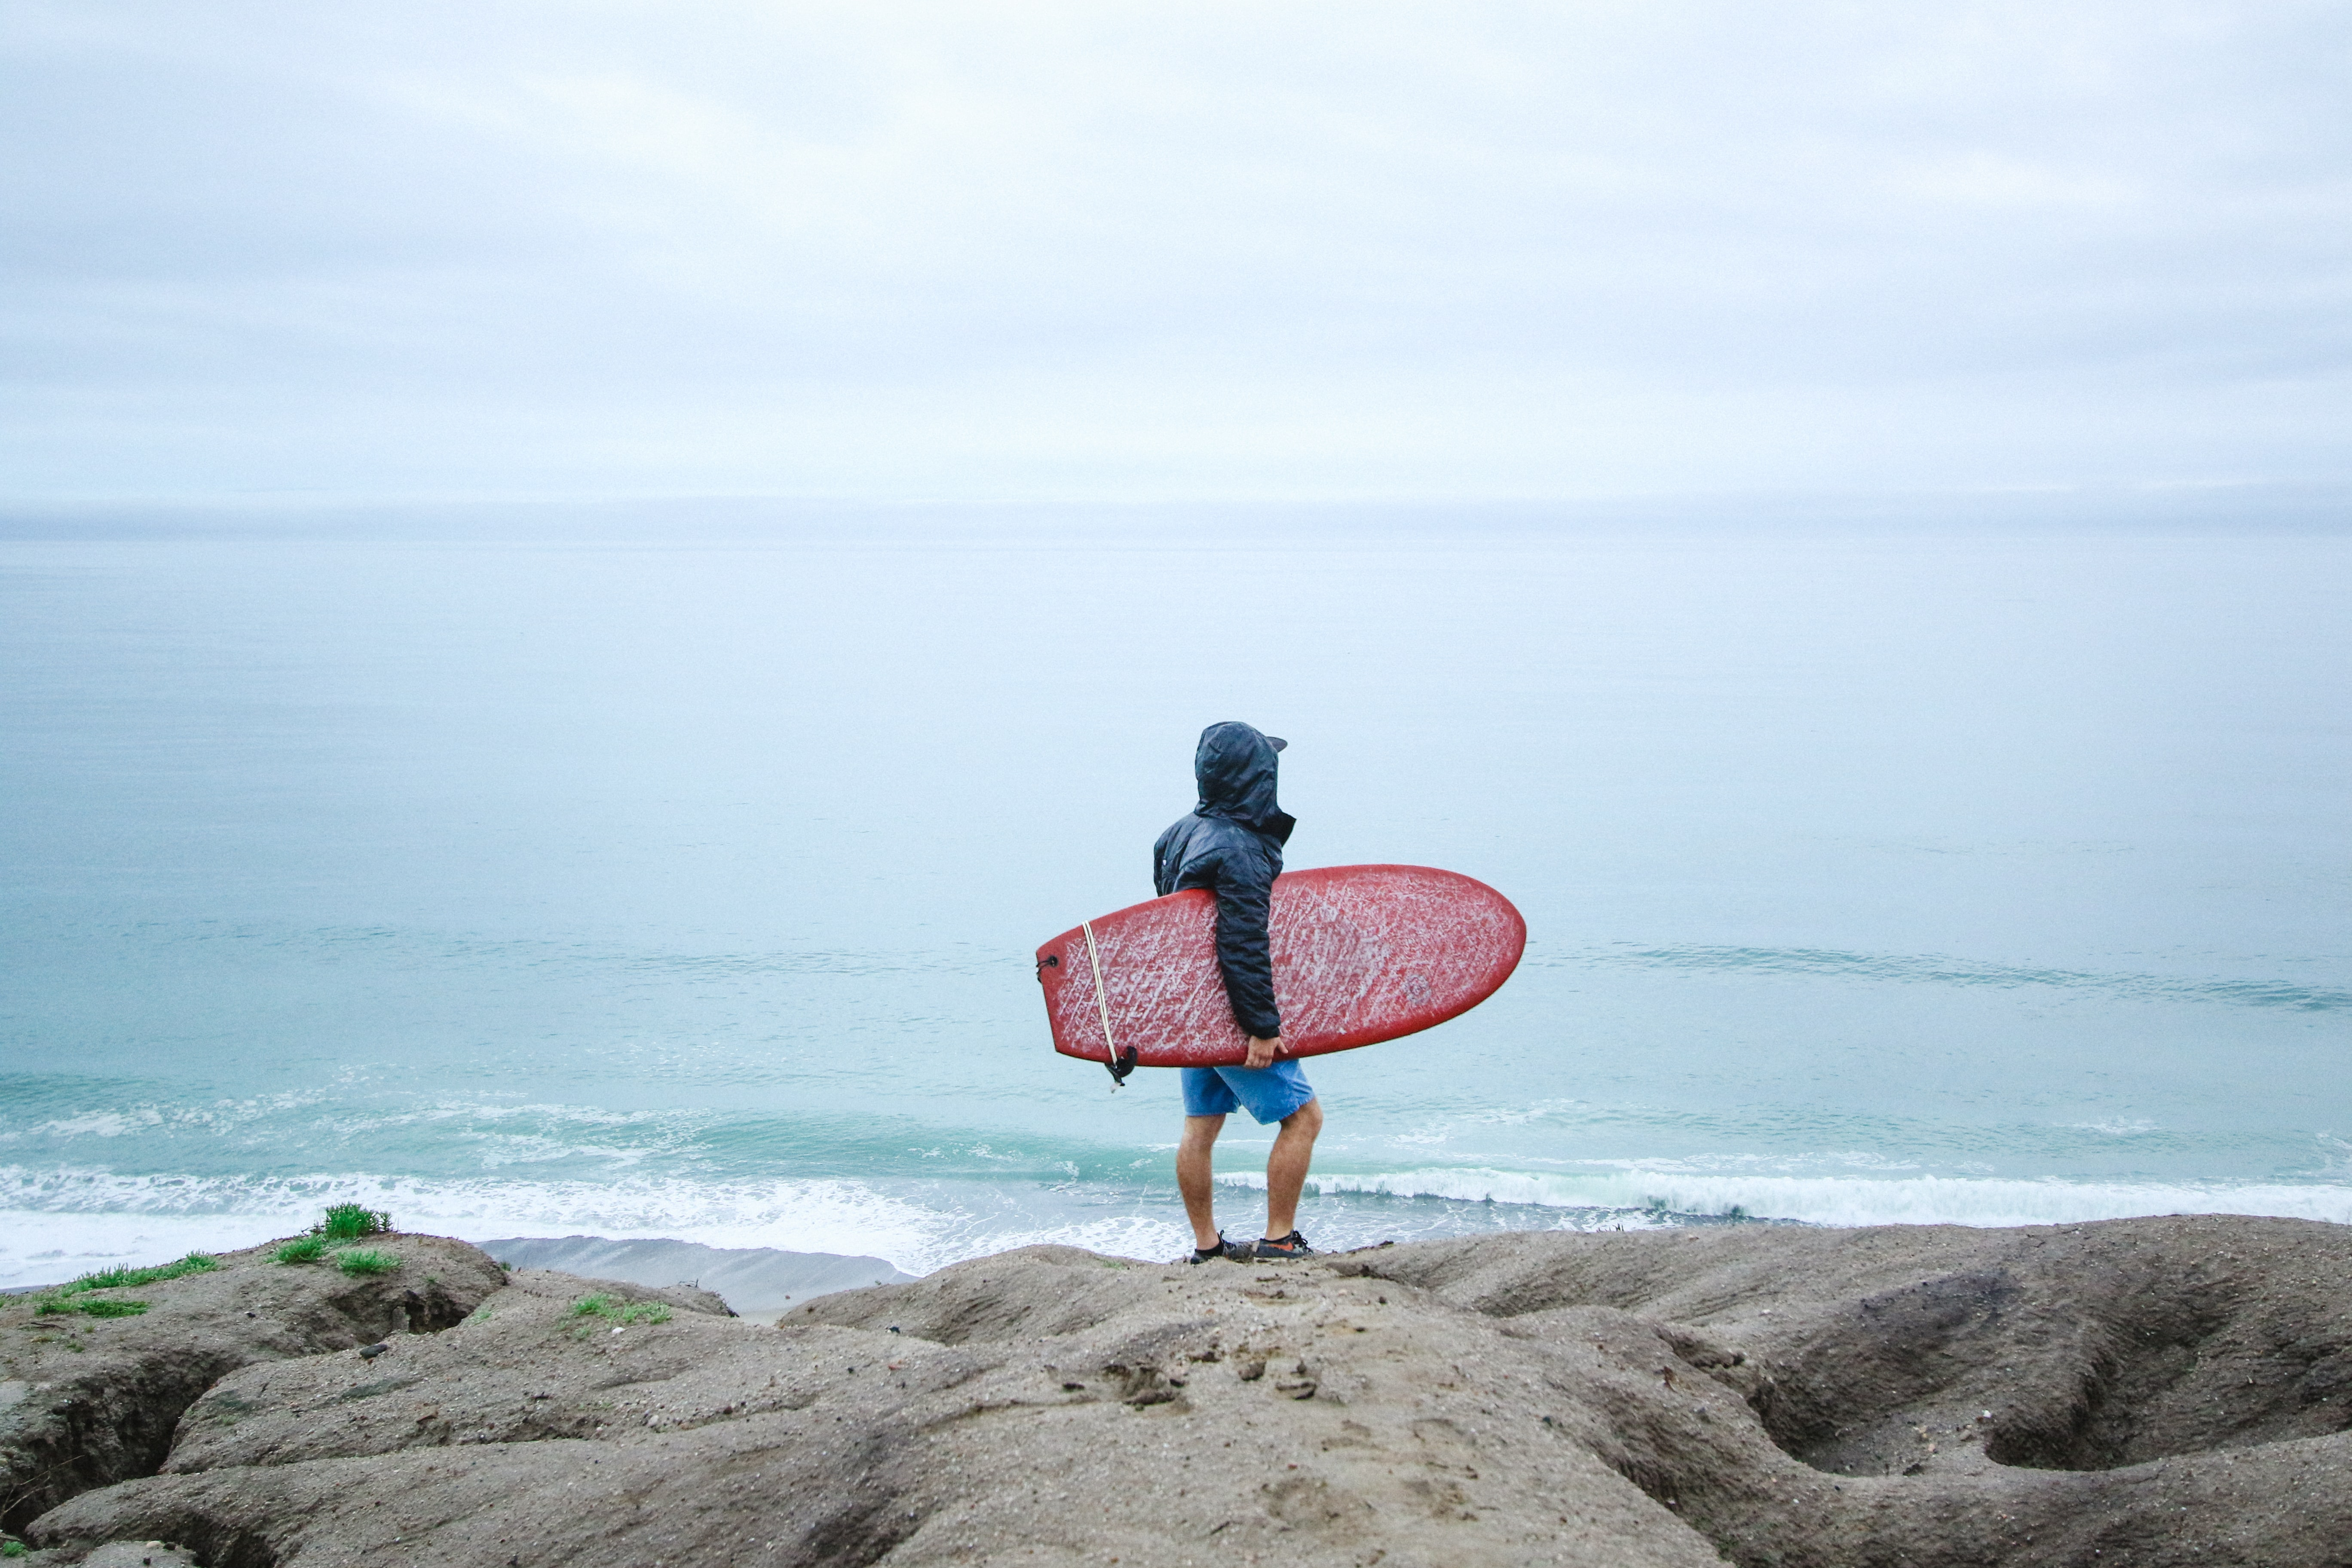 A man with his hood up standing on the a rocky coastline at San Clemente, carrying a red surfboard and looking out over the sea